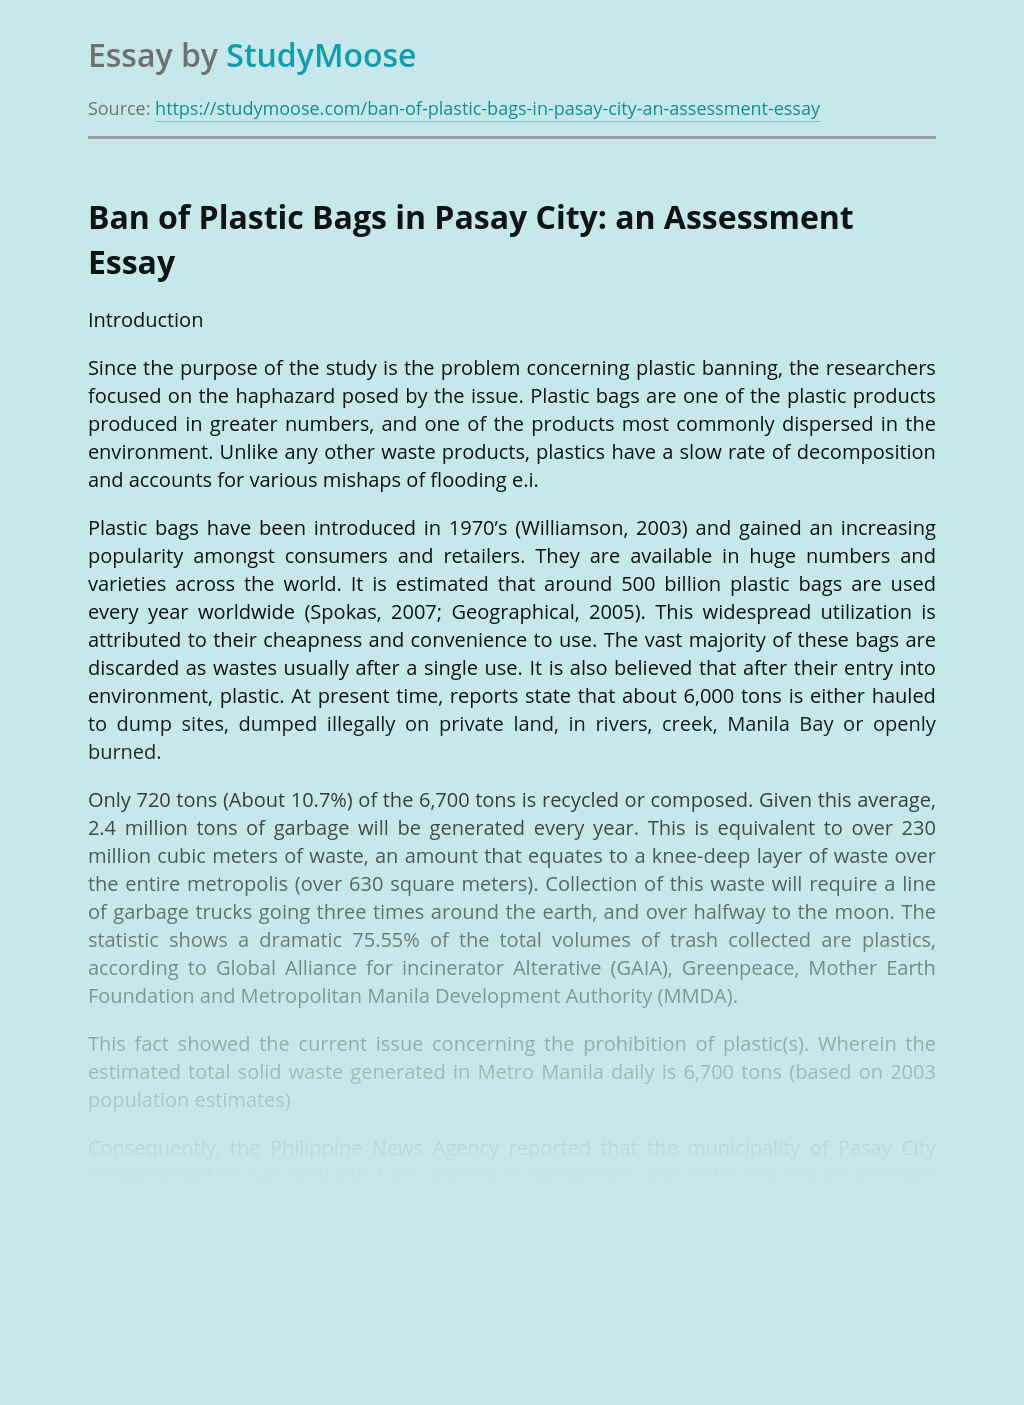 Ban of Plastic Bags in Pasay City: an Assessment